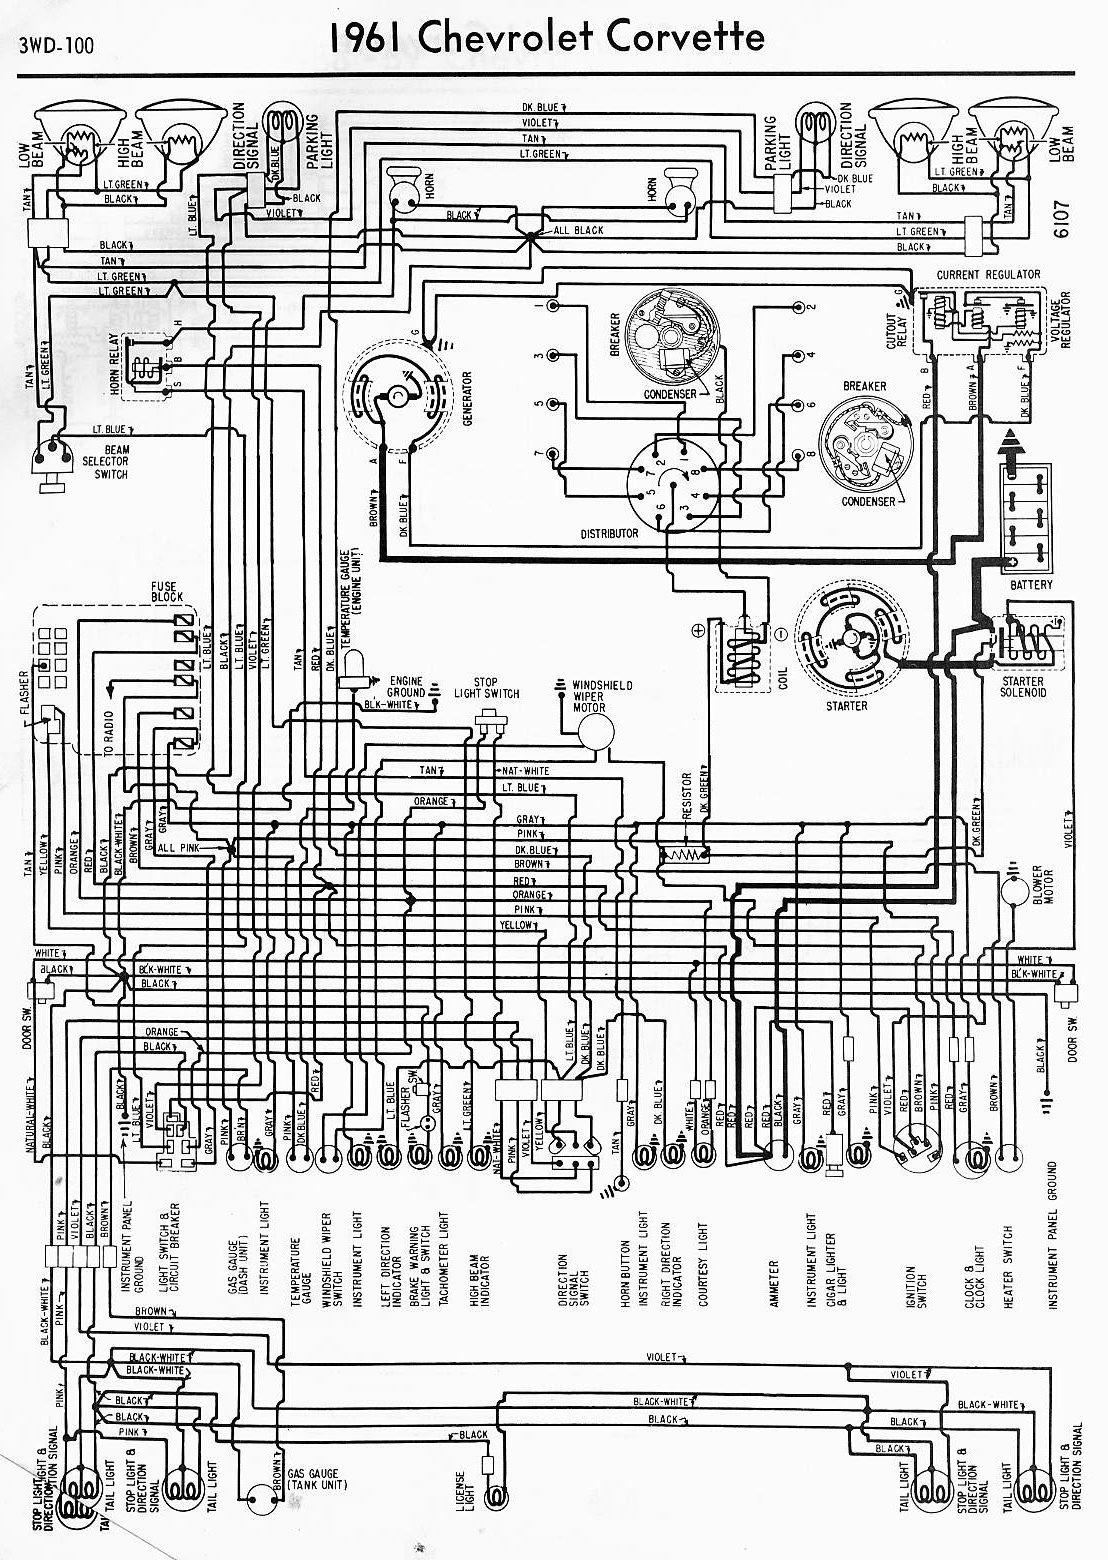 hight resolution of 1961 chevy dash wiring diagram free download wiring diagrams long 1961 chevy dash wiring diagram free download